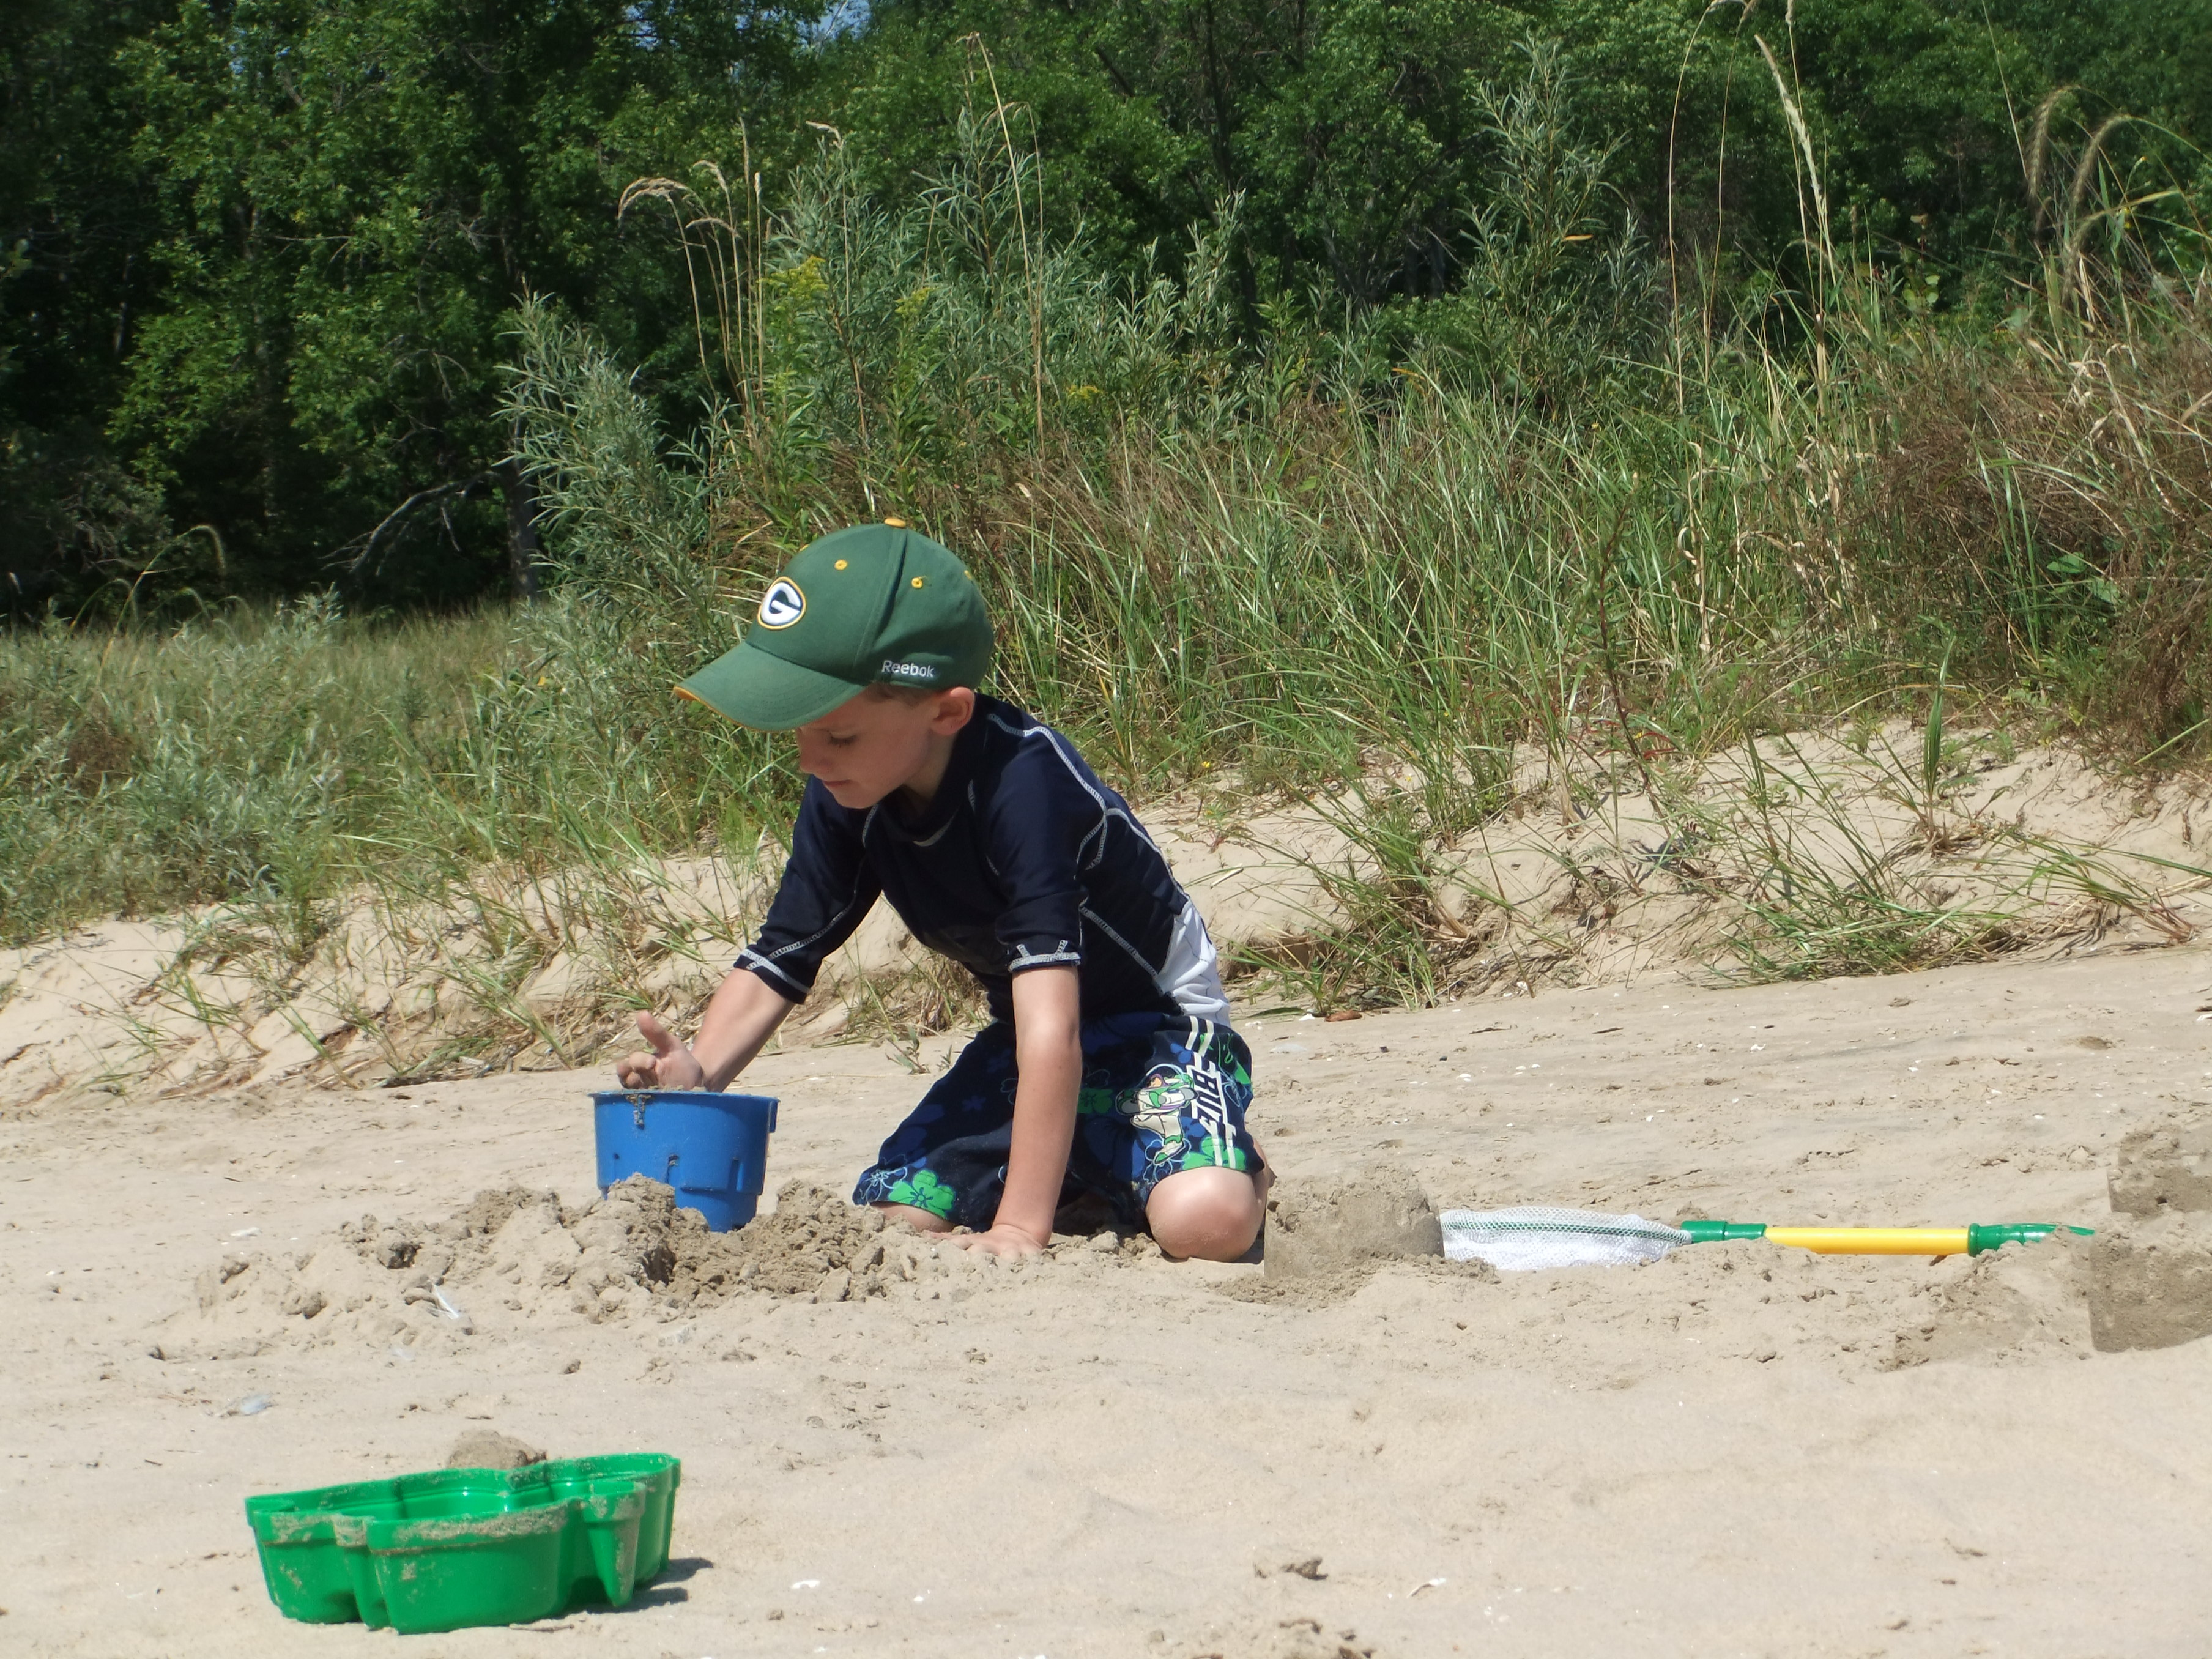 Playing in the sand at Harrington Beach State Park.